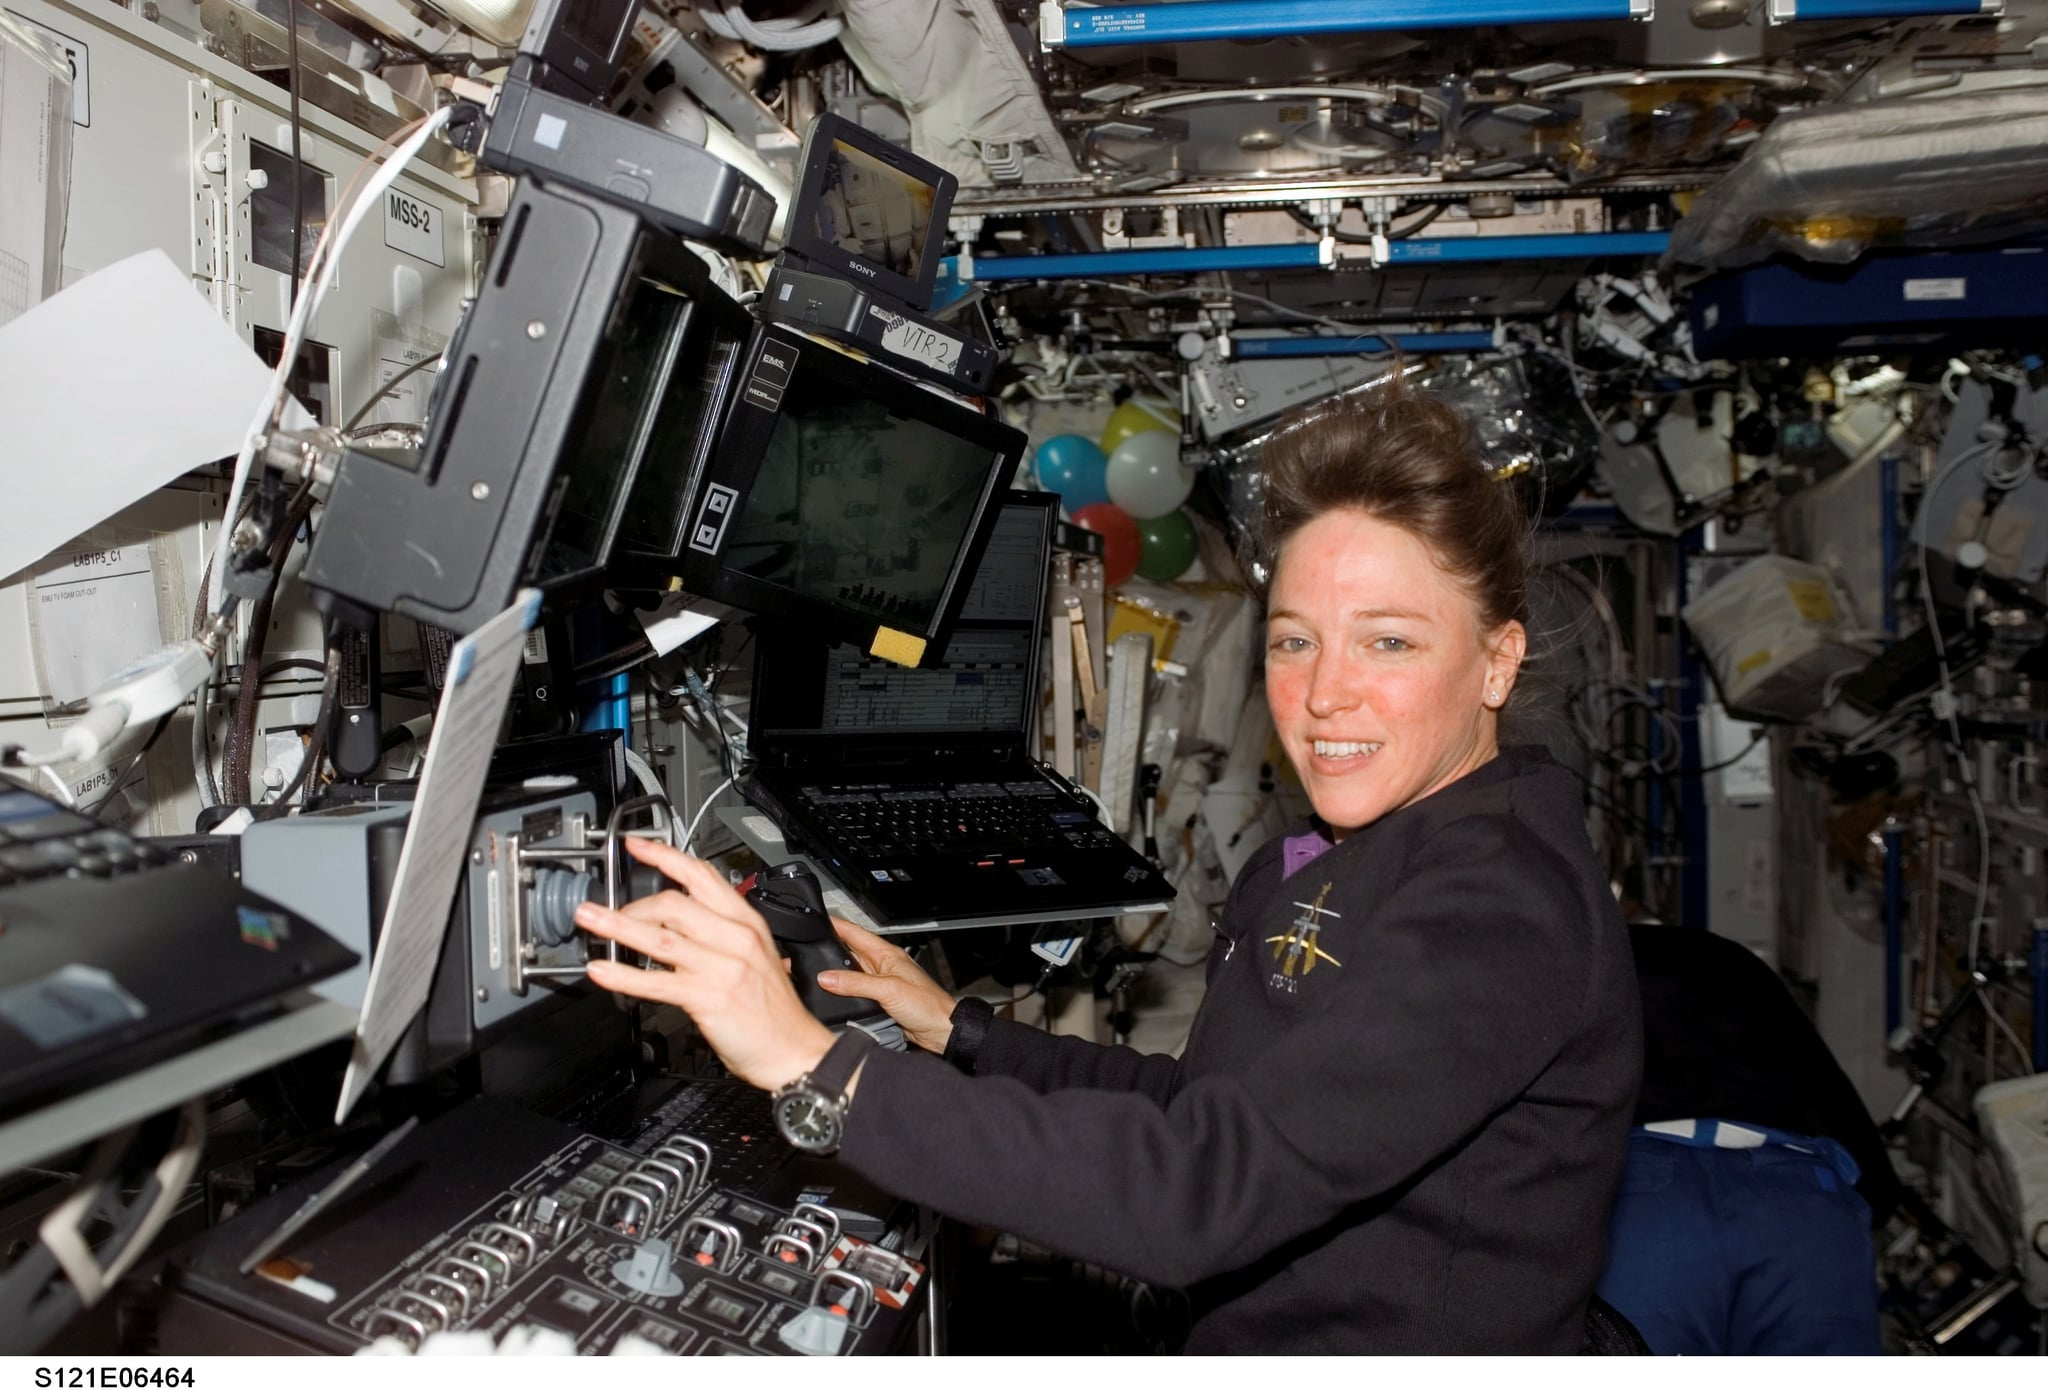 IN SPACE - JULY 13:  Mission specialist Lisa M. Nowak works at the Mobile Service System (MSS) and Canadarm2 controls in the Destiny laboratory of the International Space Station July 13, 2006. Nowak is a crew member aboard the Space Shuttle Discovery, which has been docked to the station since last week.  (Photo by NASA via Getty Images)